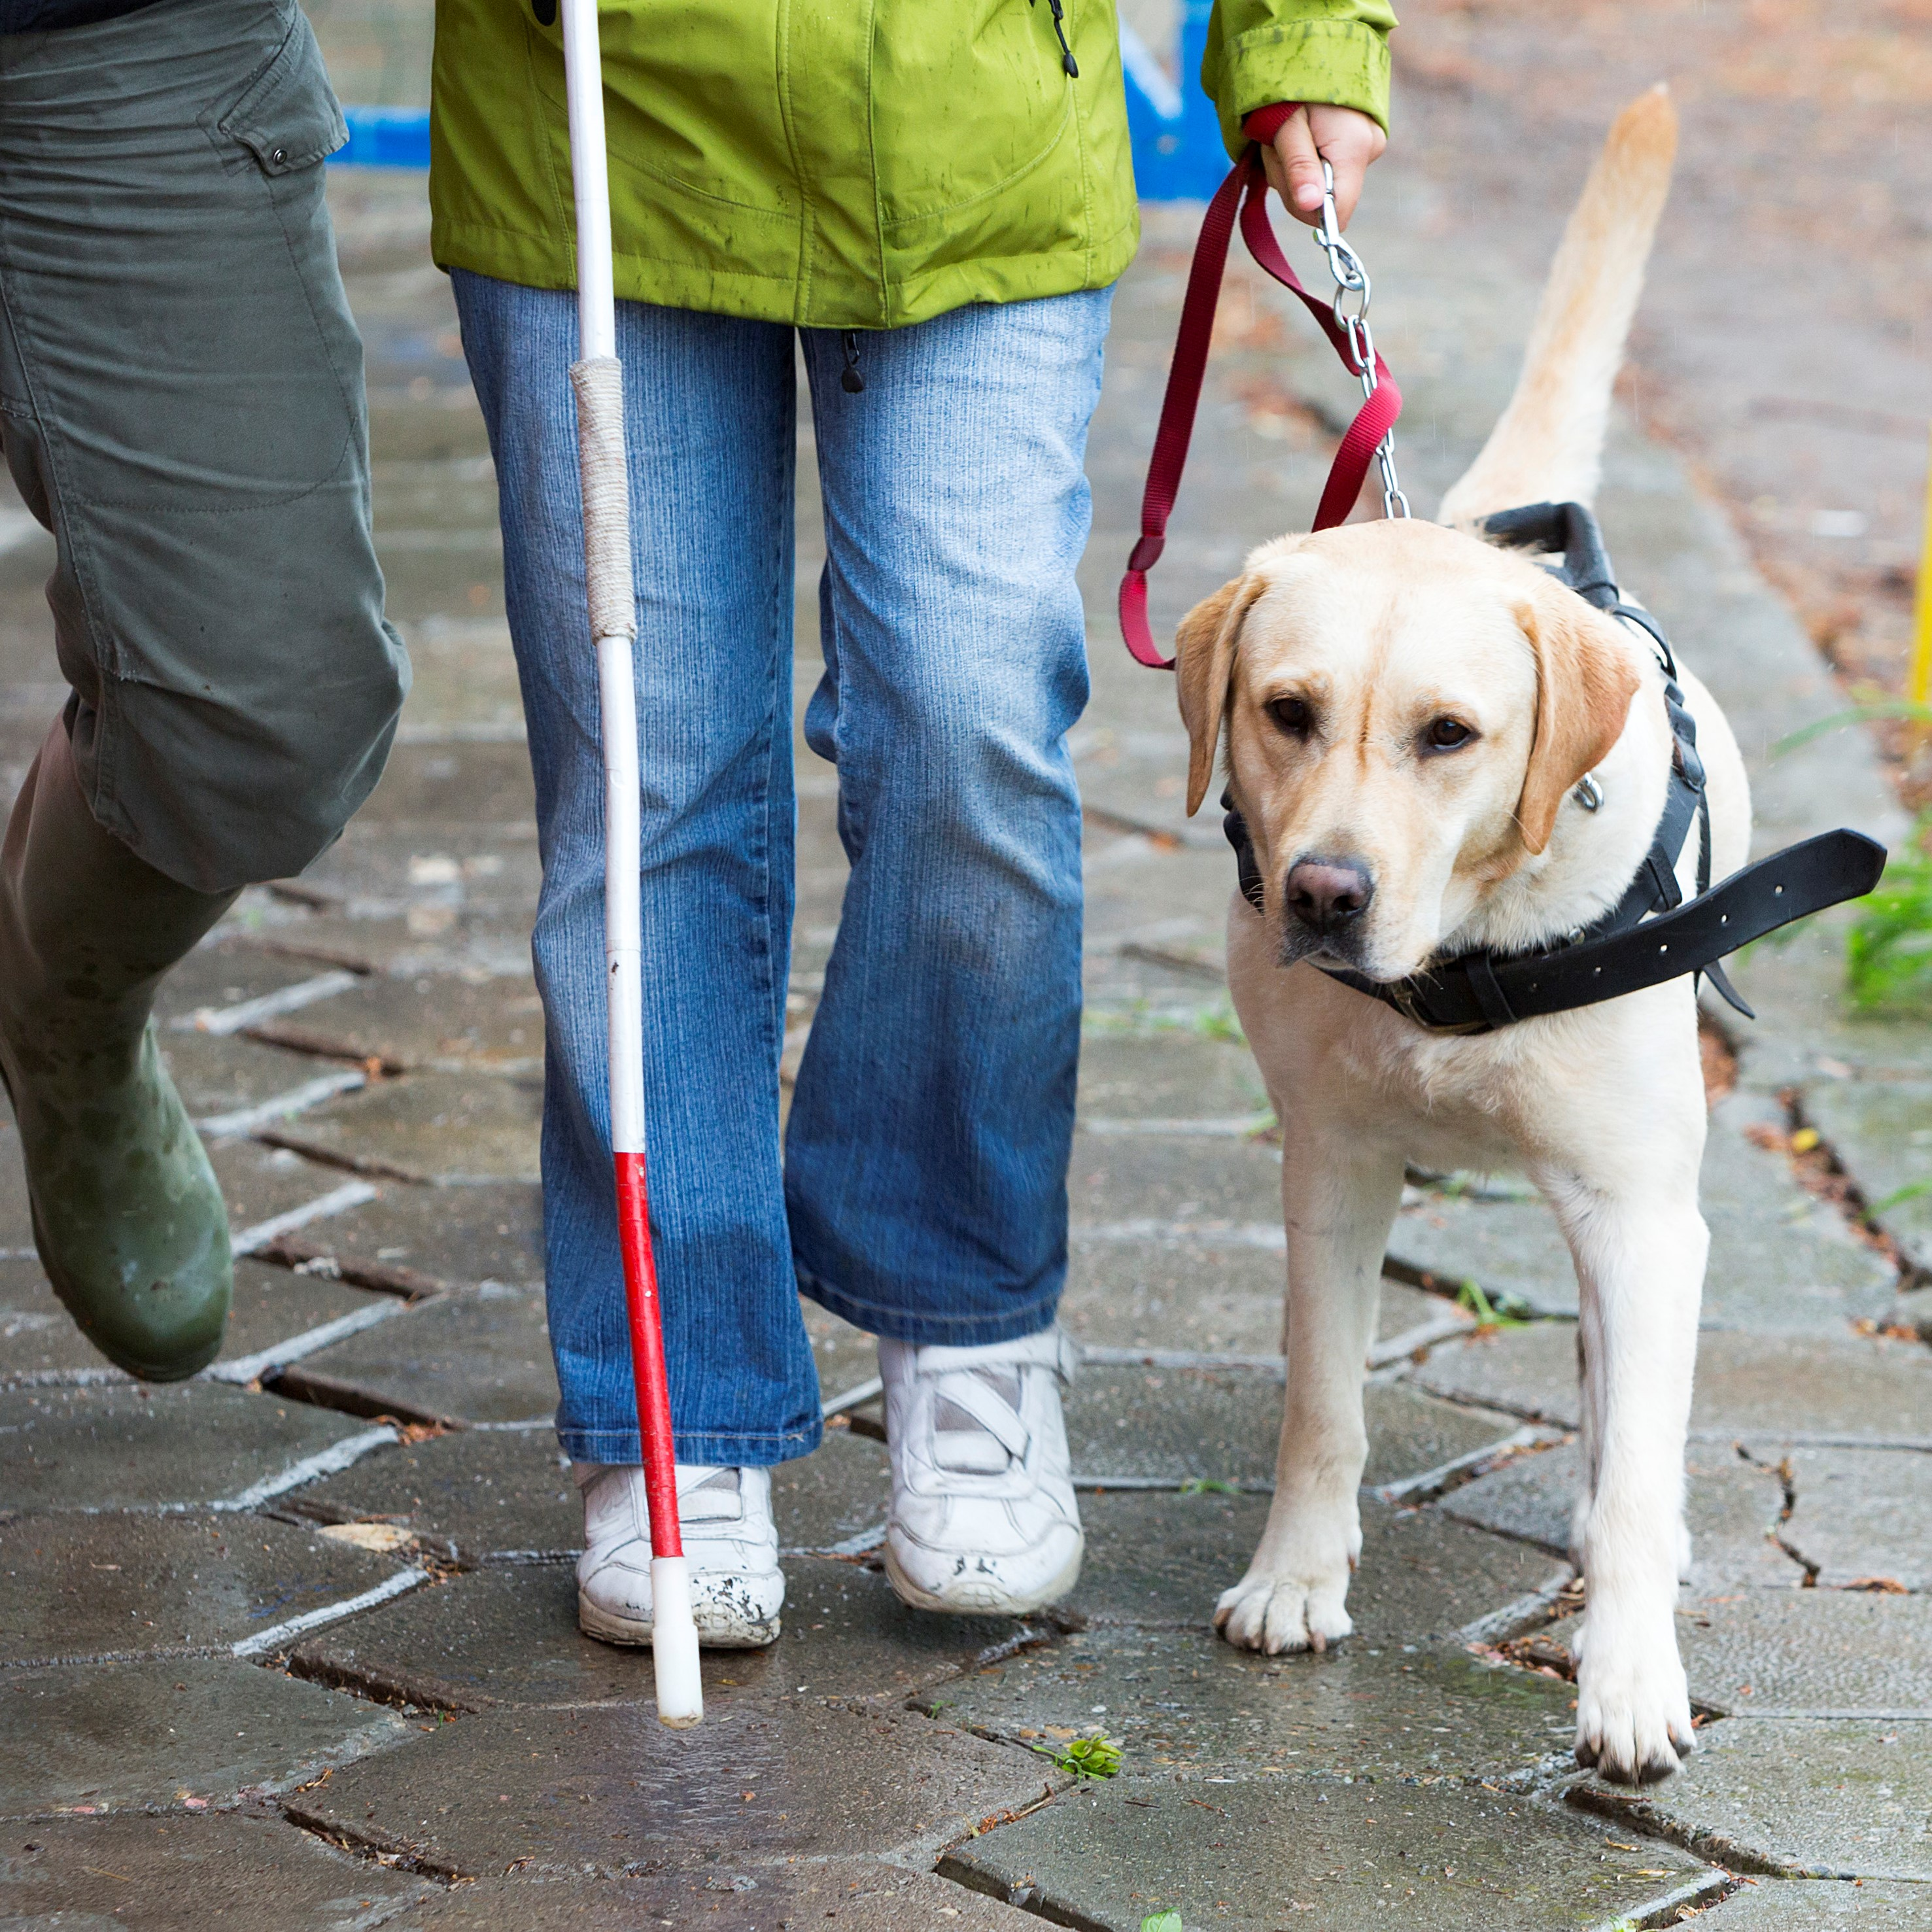 Guide dog walks next to a person. We only see the persons legs.